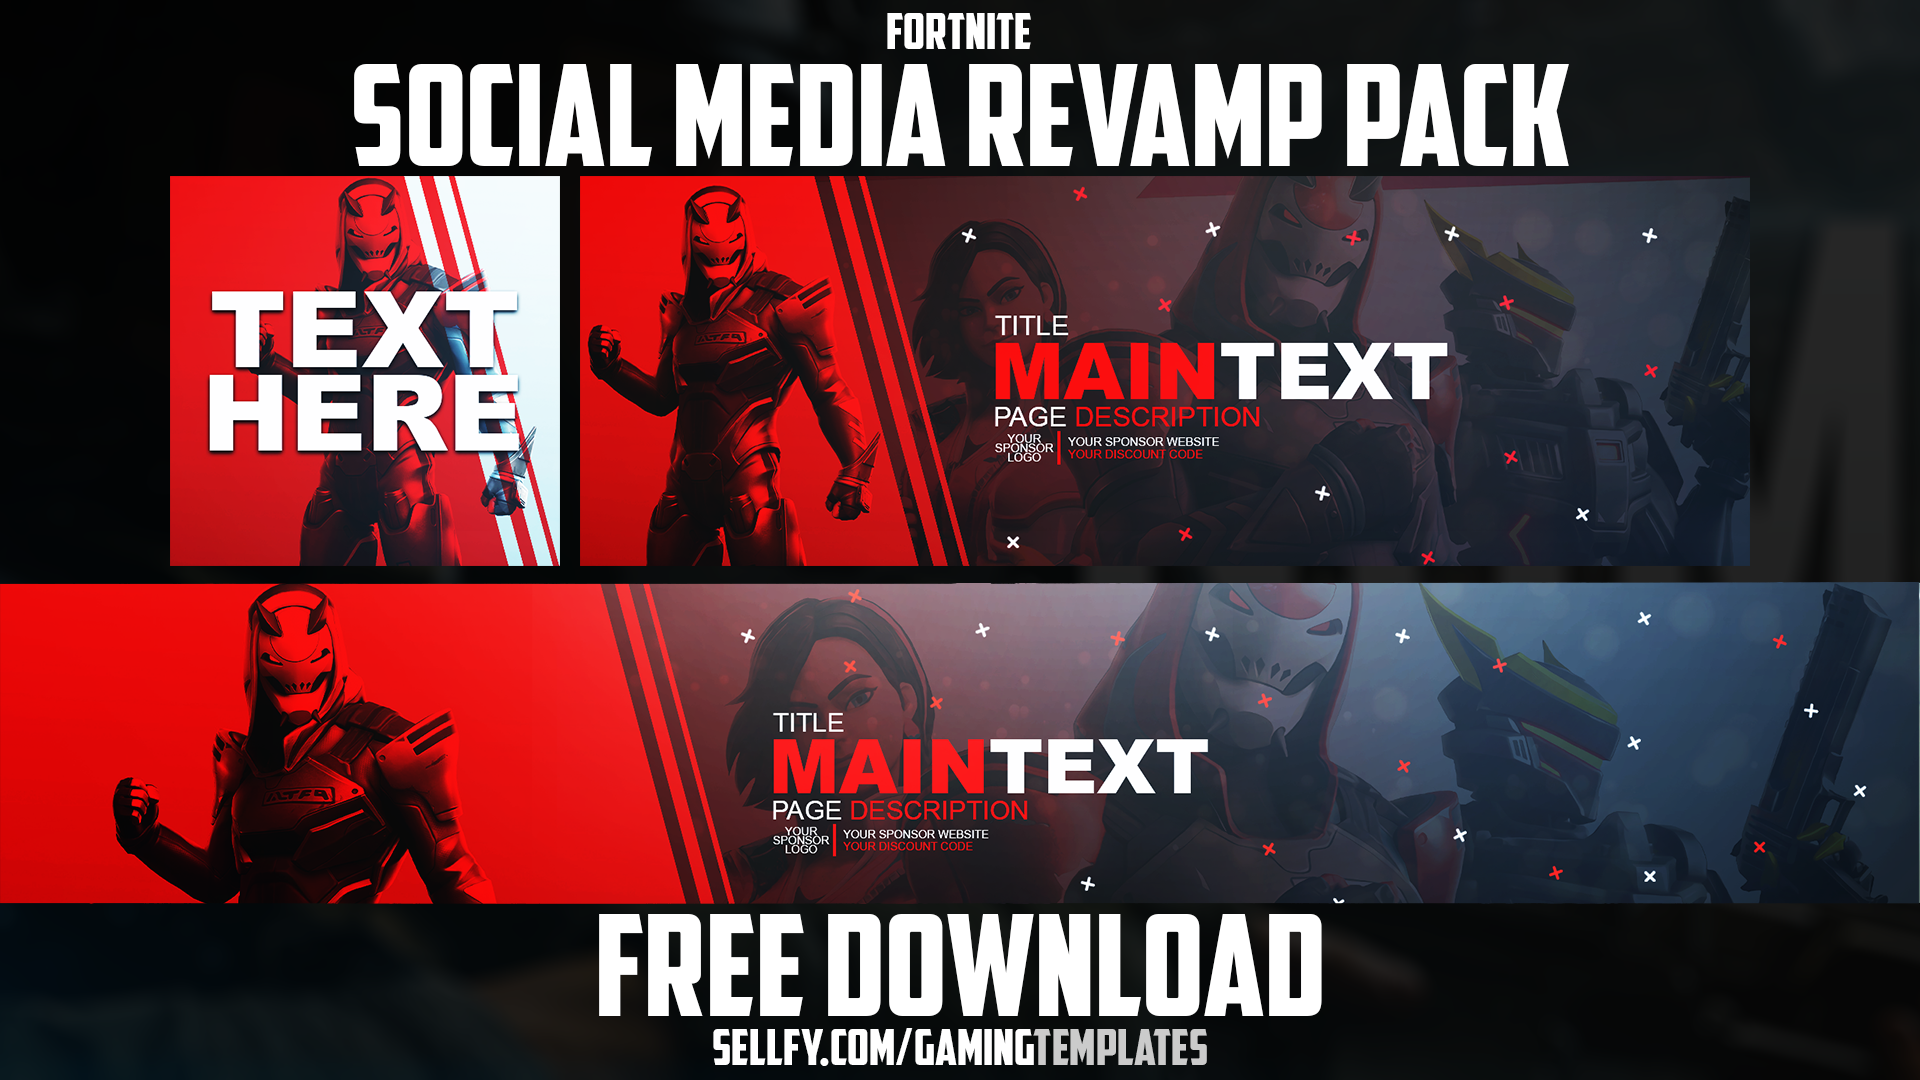 Fortnite Season 9 Social Media Revamp Pack 2 Youtube